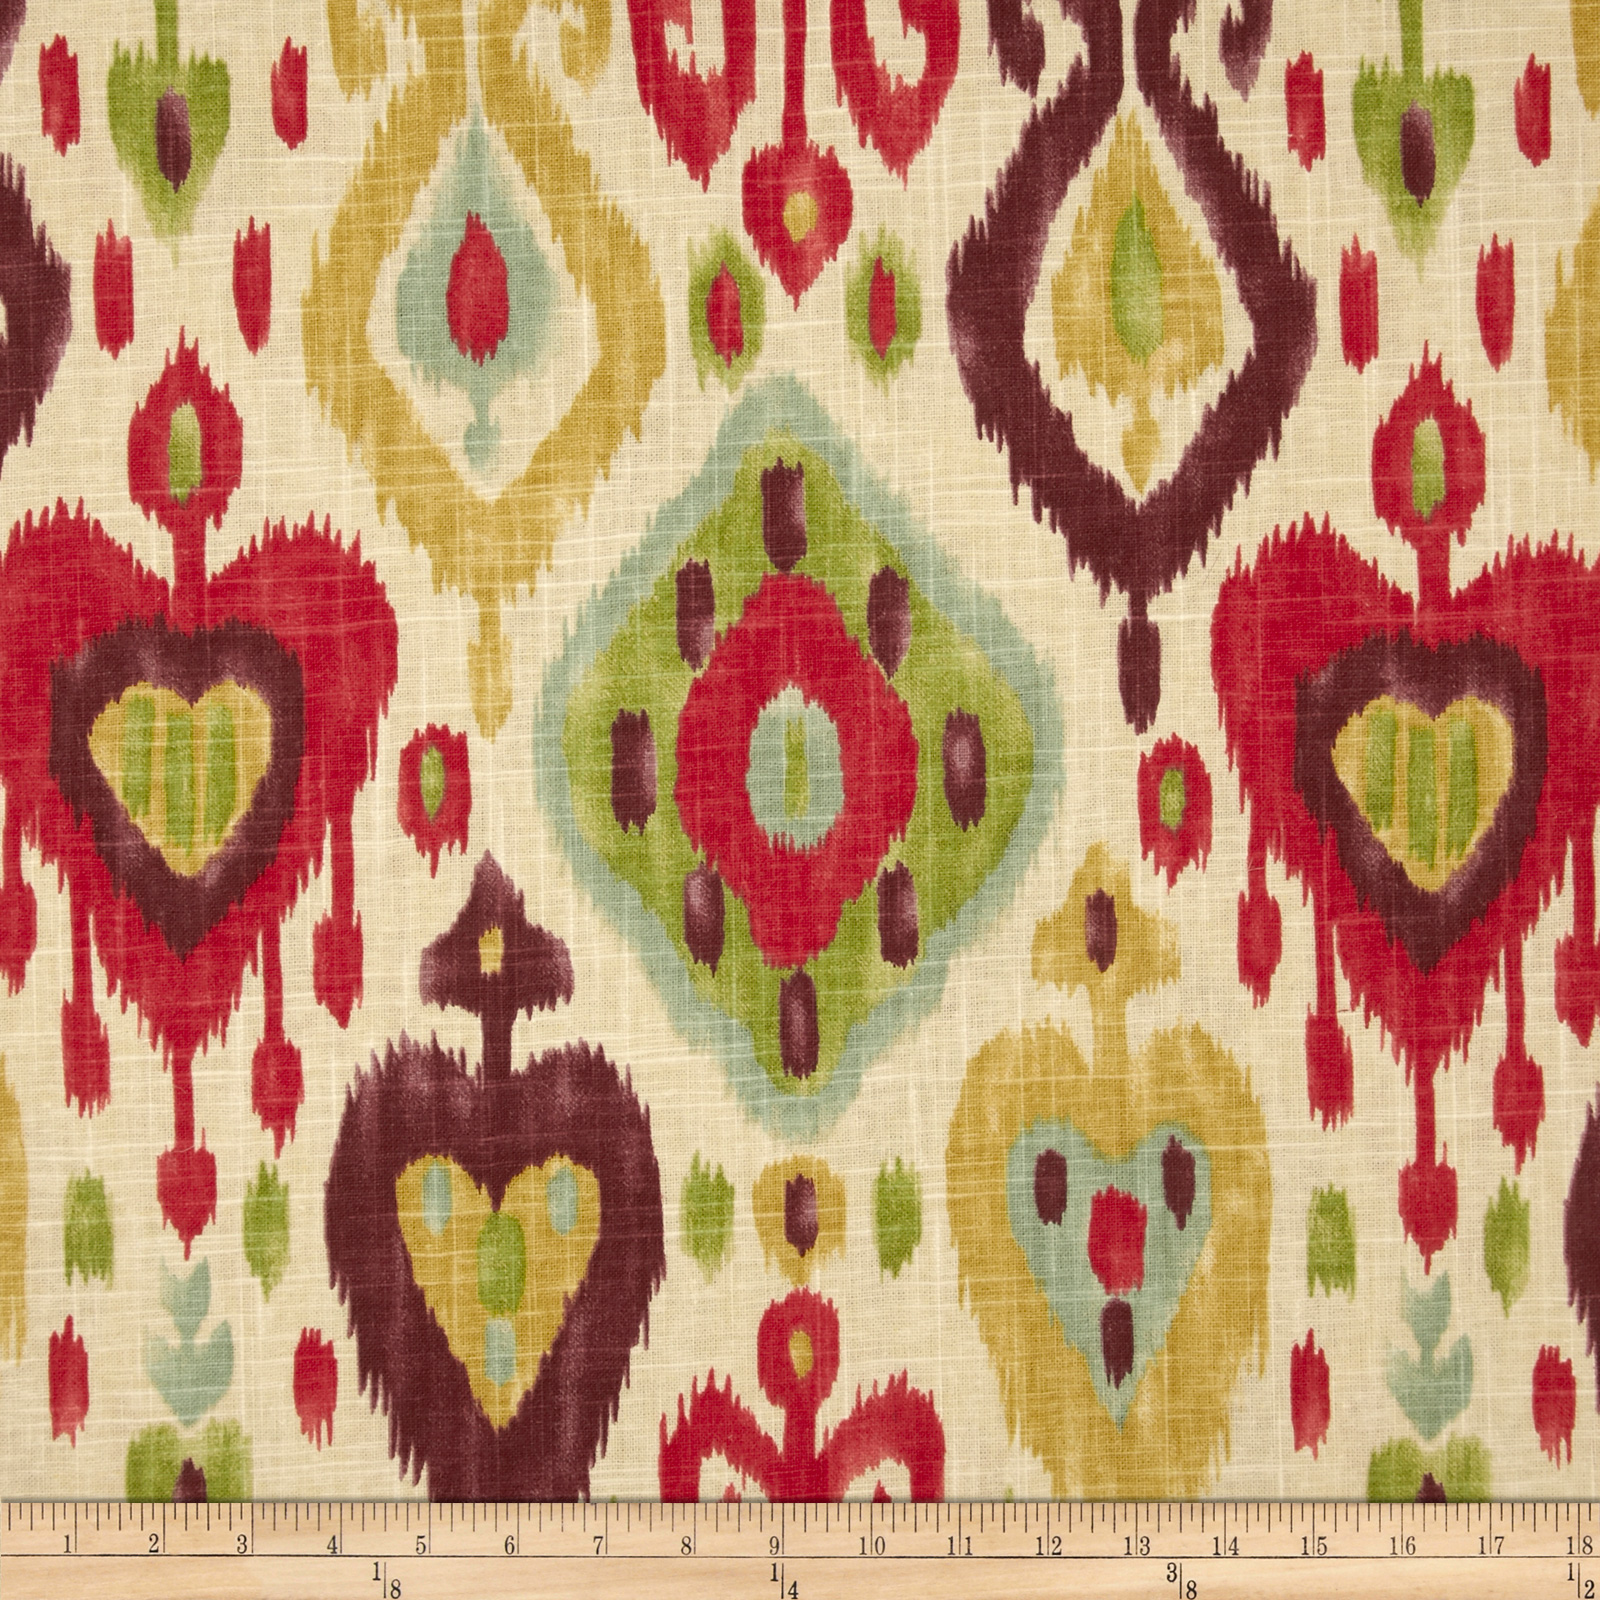 Richloom Ikat Django Jubilee Home Decor Fabric